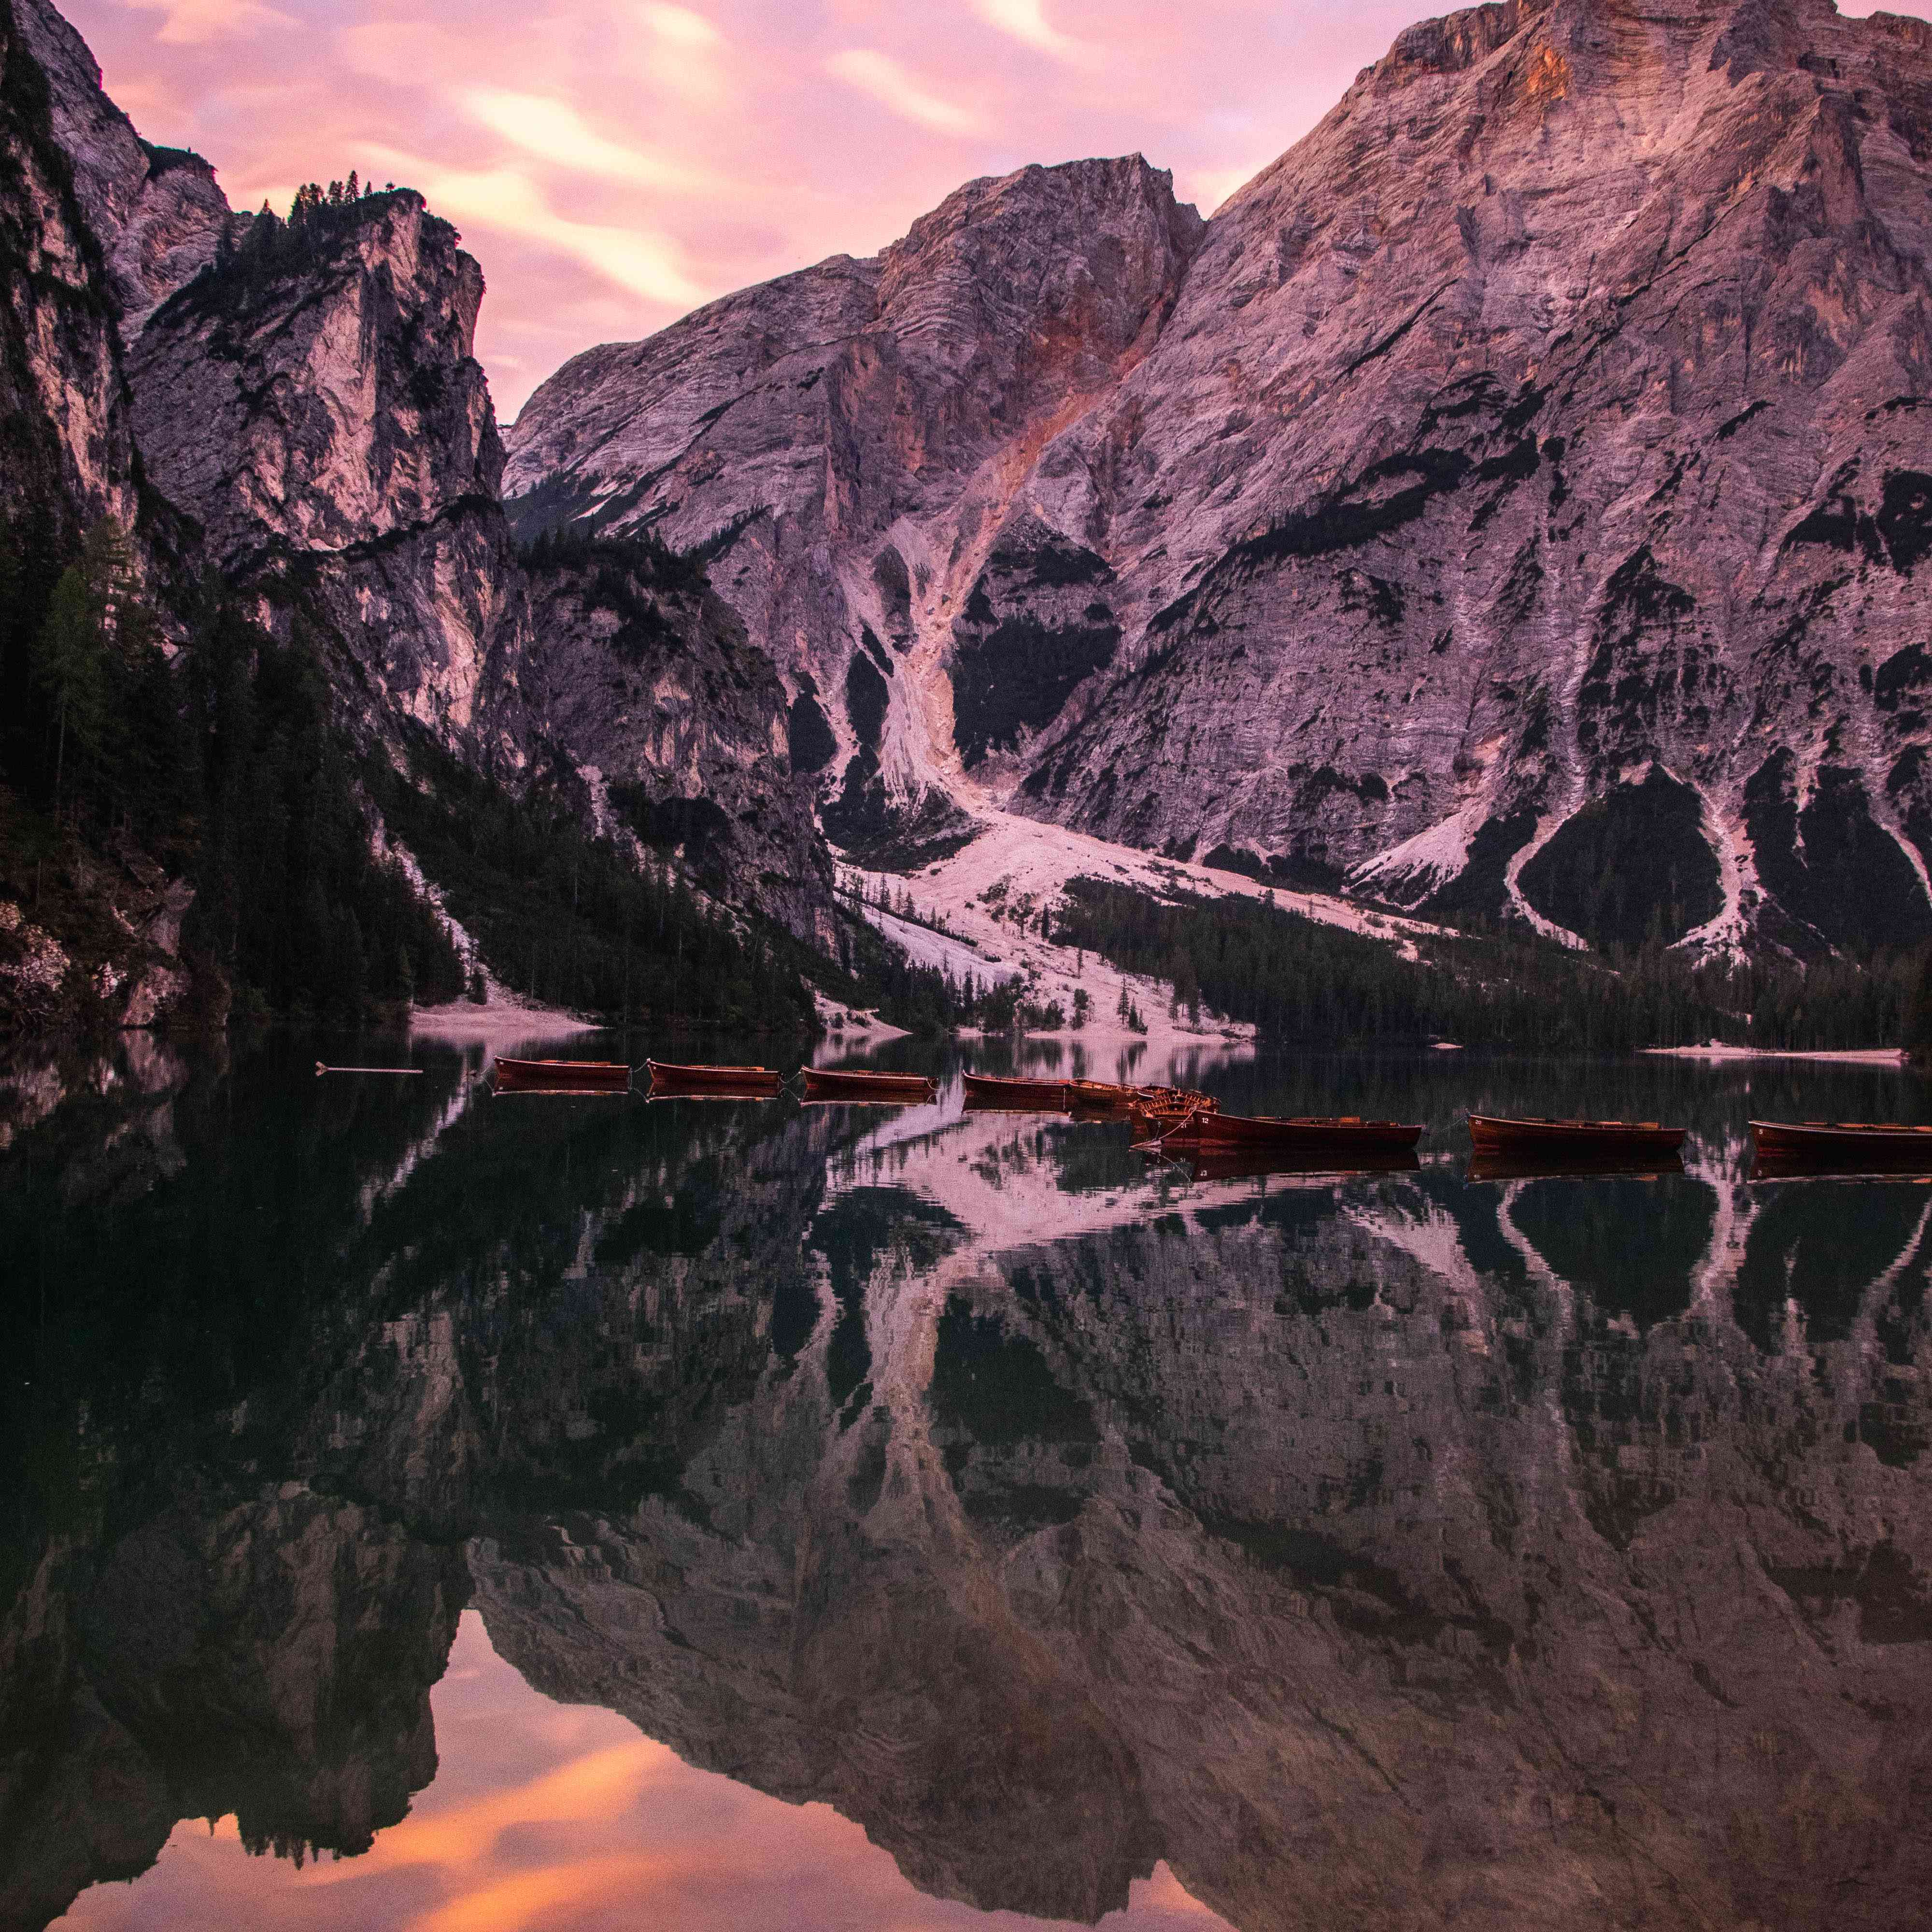 A sunset over a lake in the Dolomites